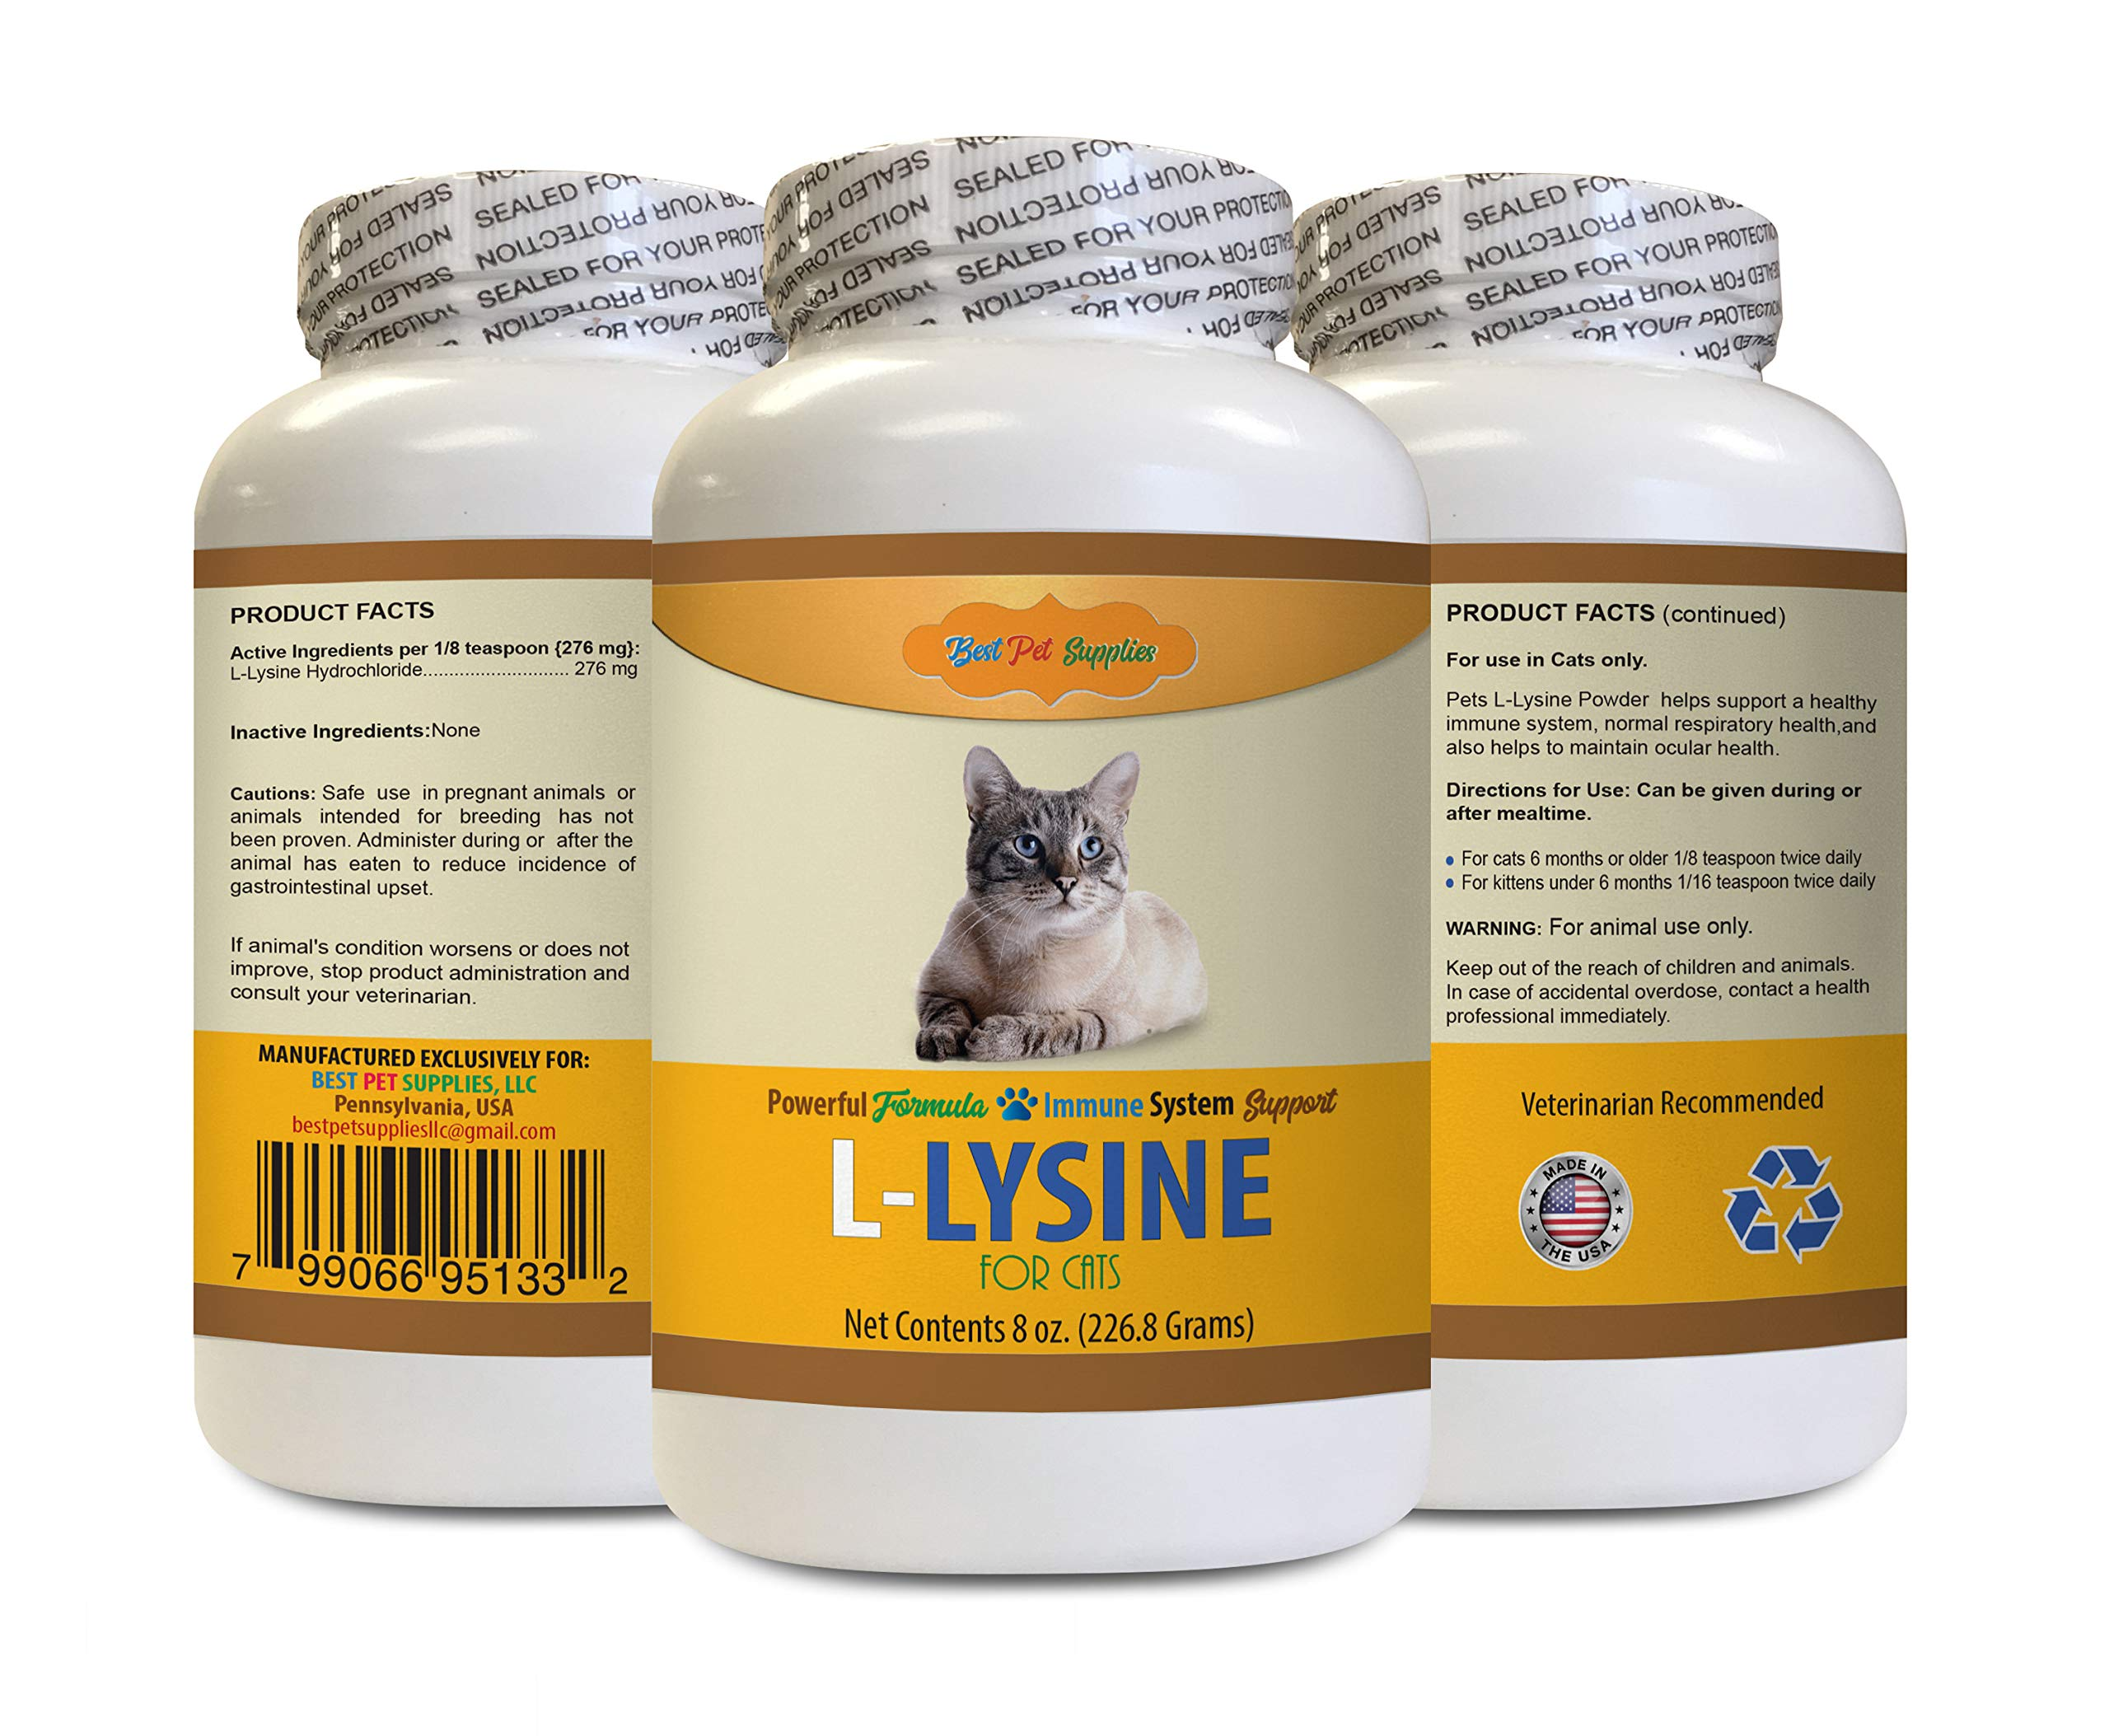 BEST PET SUPPLIES LLC cat Anti Itch - L-LYSINE Powder for Cats - Premium Immune Support - Vet Recommended - cat lysine Powder - 1 Bottle (8 OZ) by BEST PET SUPPLIES LLC